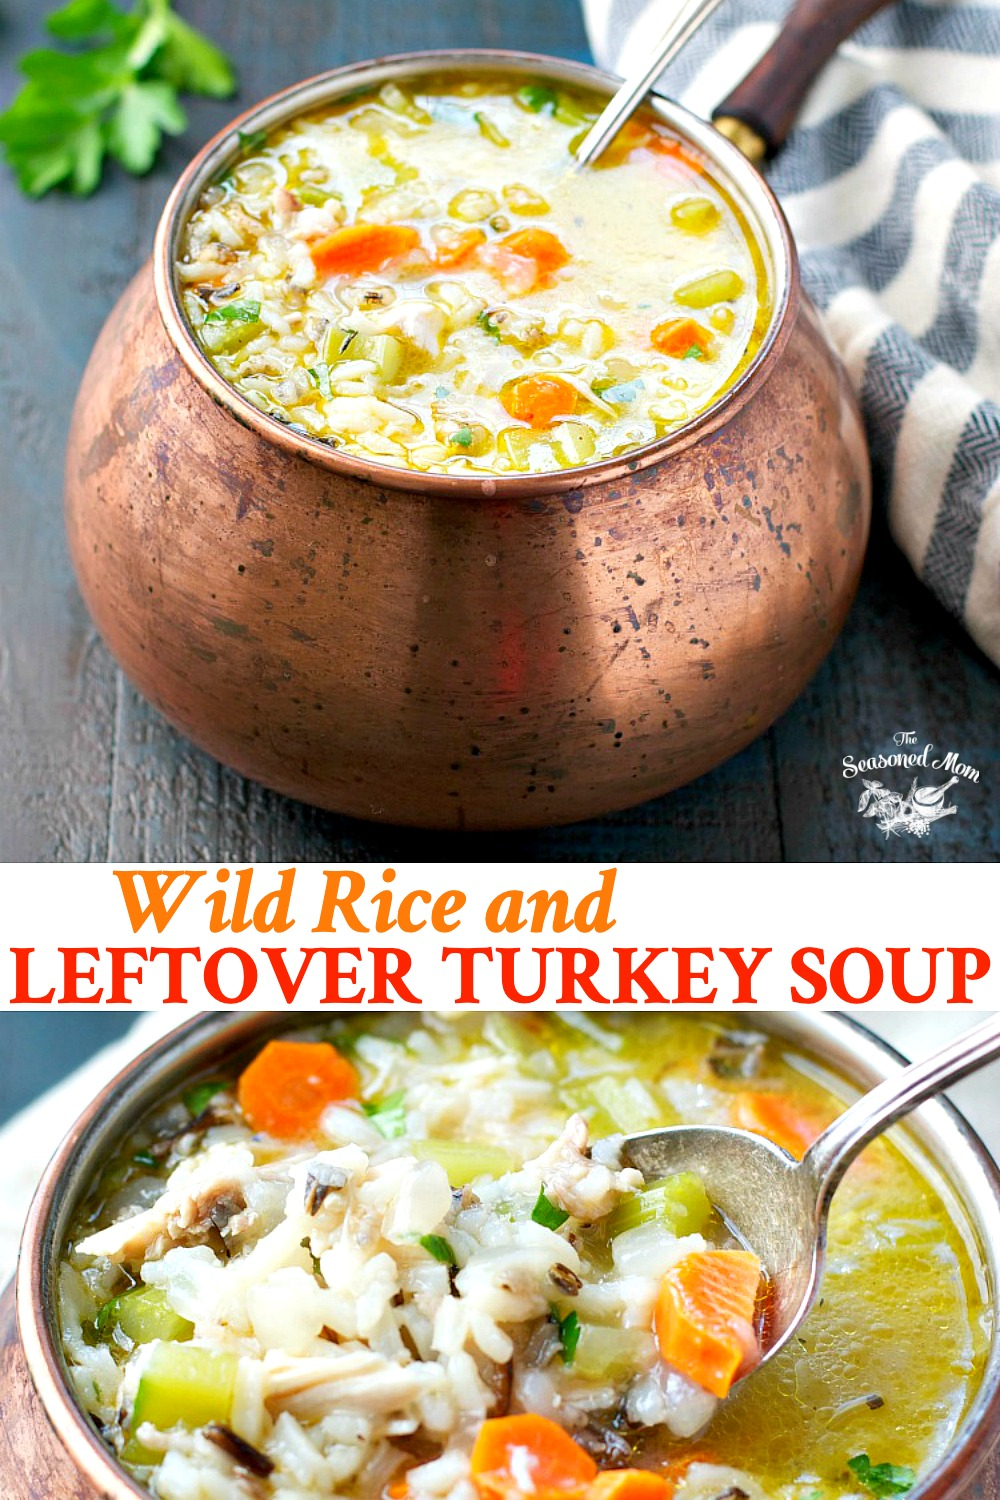 Wild Rice and Leftover Turkey Soup